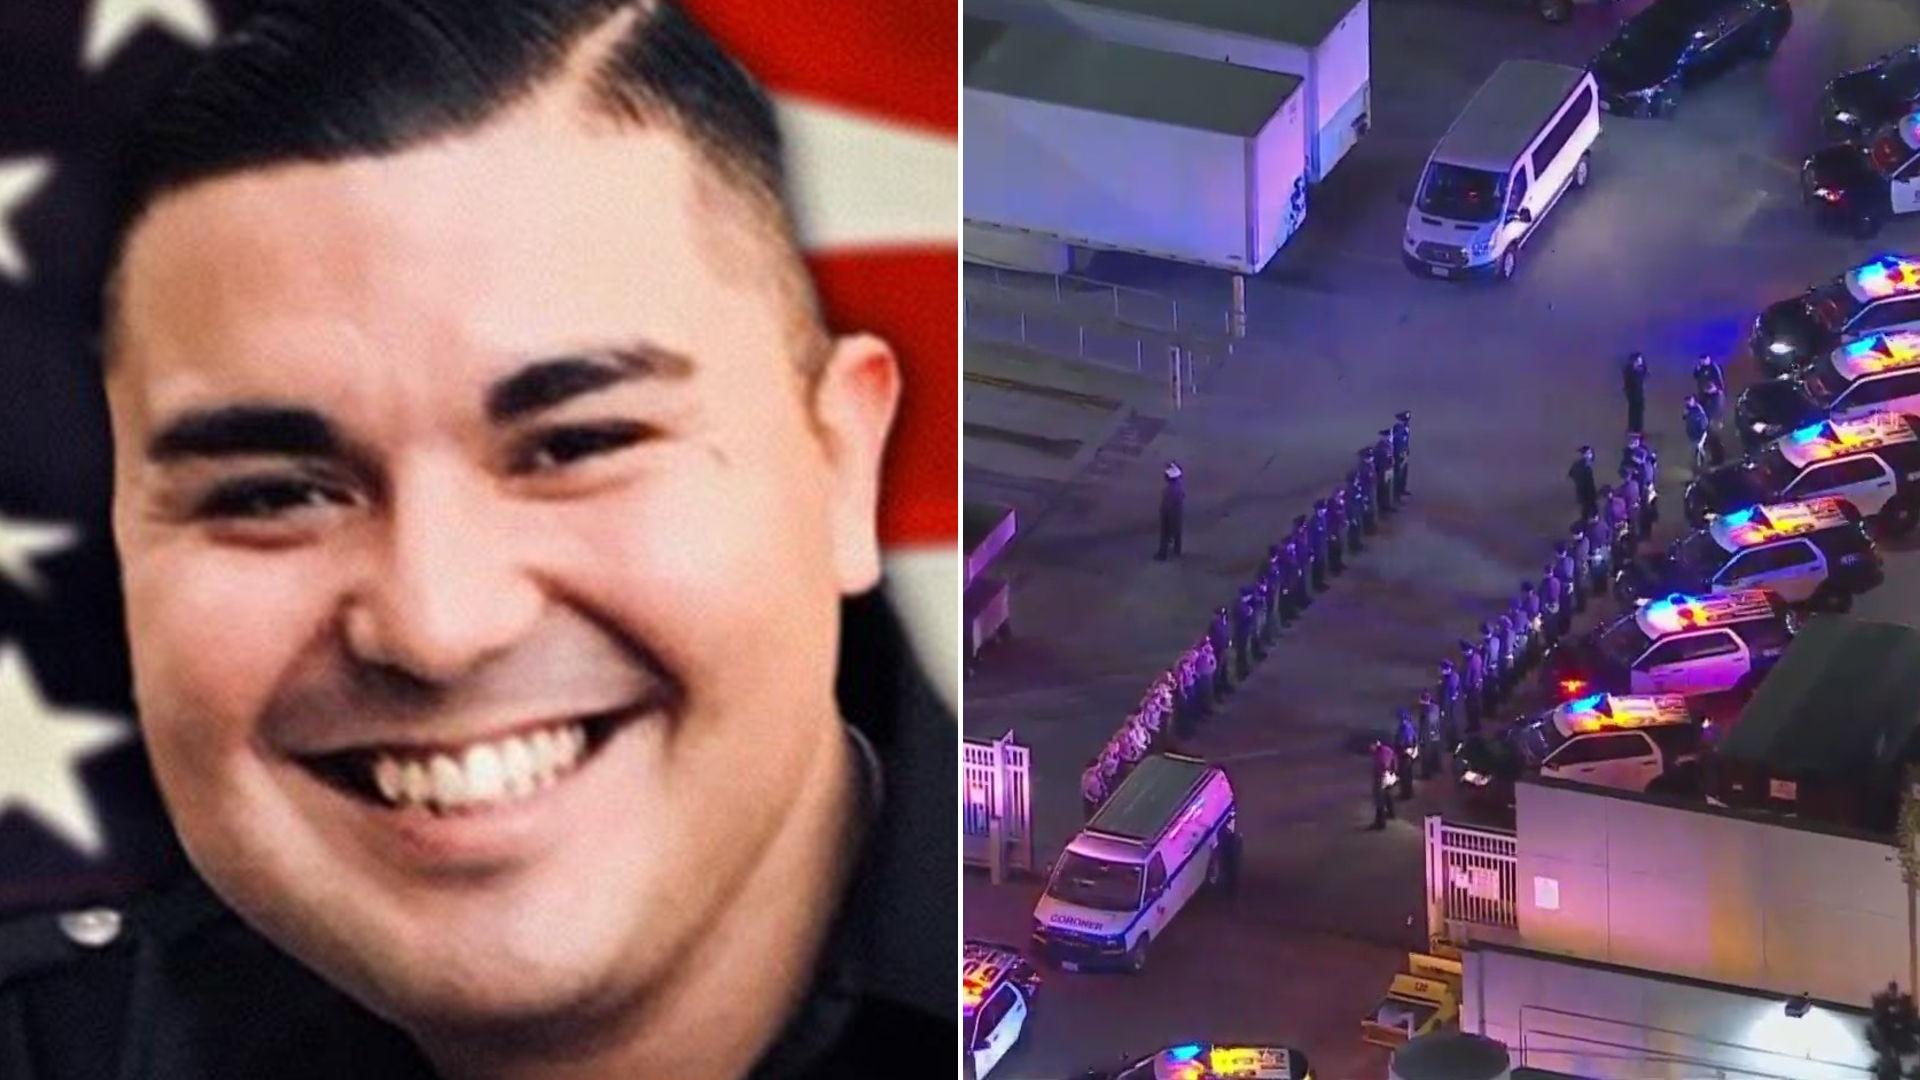 Officer Jose Anzora is seen at left in an undated photo released by the Los Angeles Police Department. At right, LAPD officers line up for a procession outside the L.A. County+USC Medical Center on March 3, 2021, following Anzora's death. (KTLA)